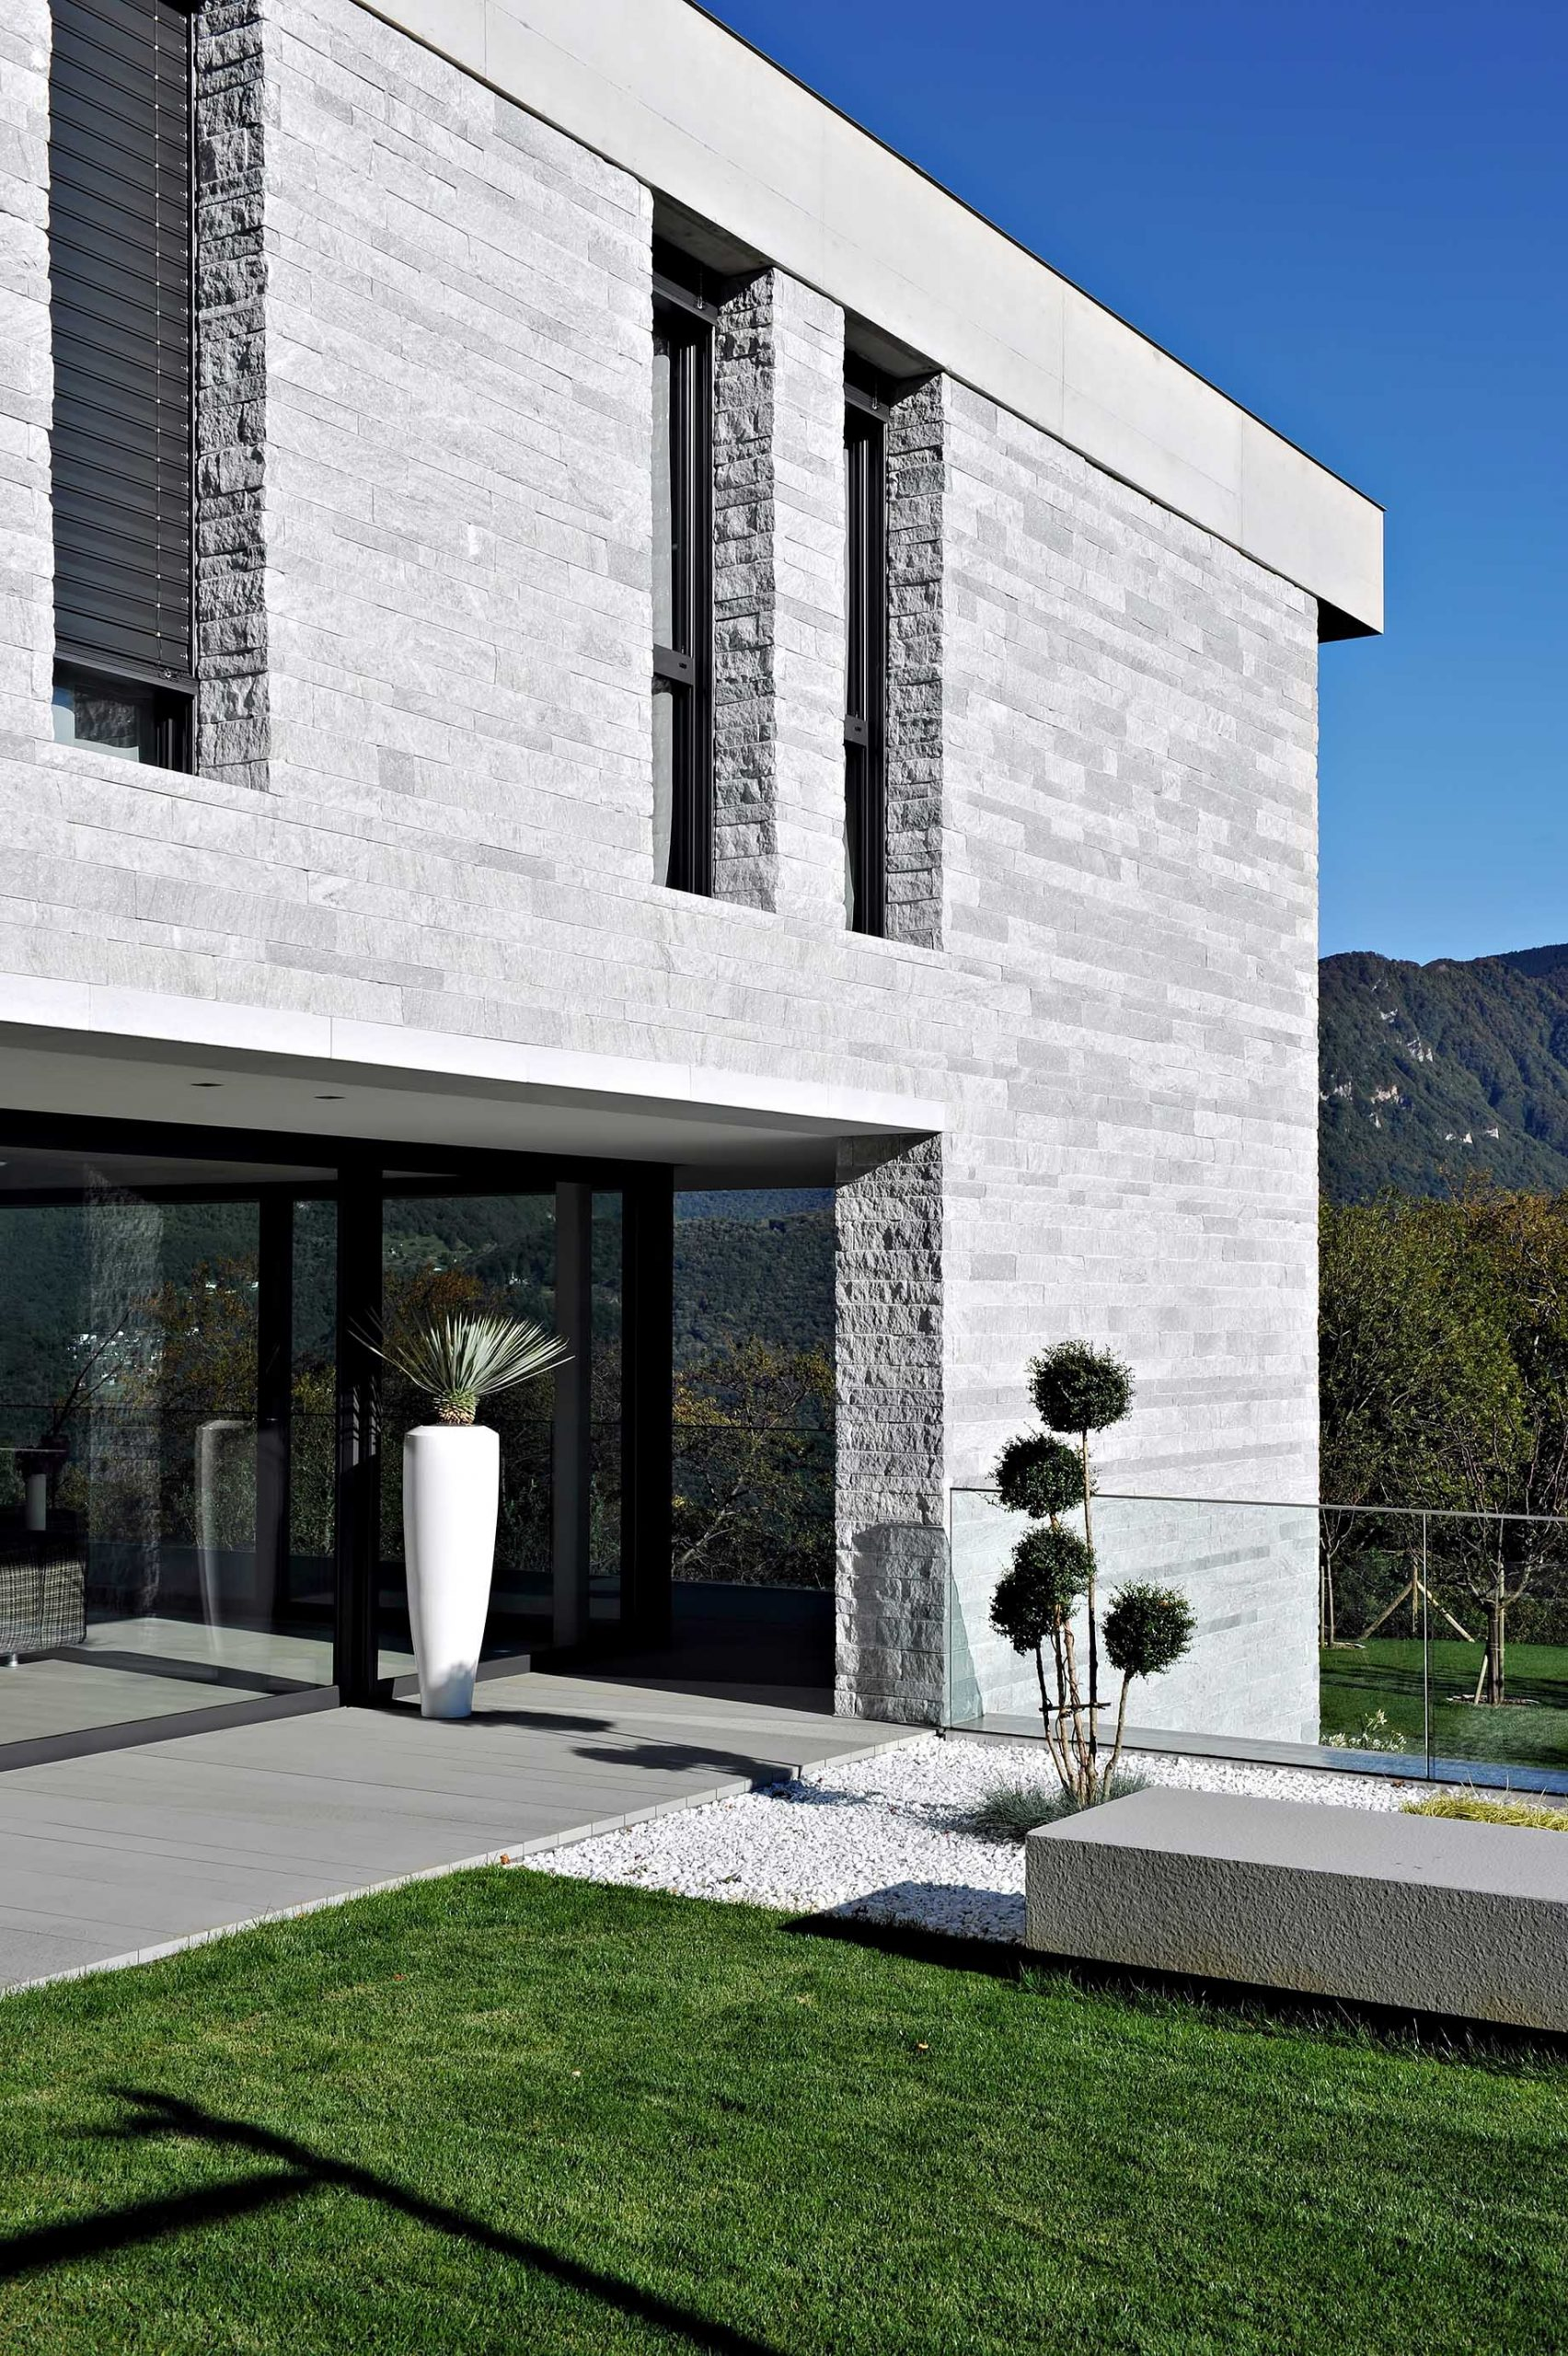 Villa Carona Luxury Residence – Lugano, Switzerland